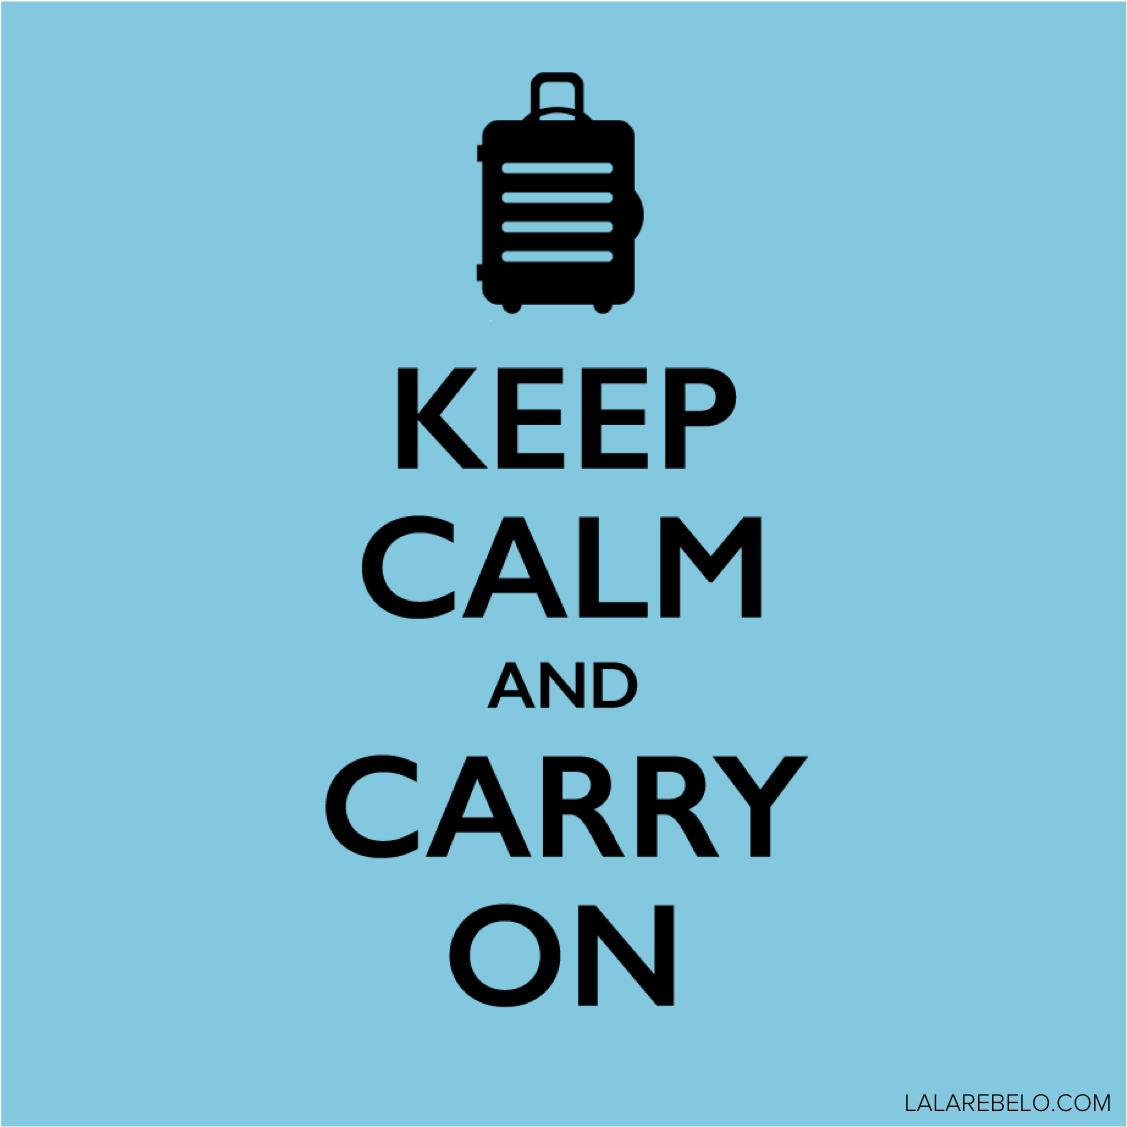 keep-calm-carry-on-lalarebelo-copia